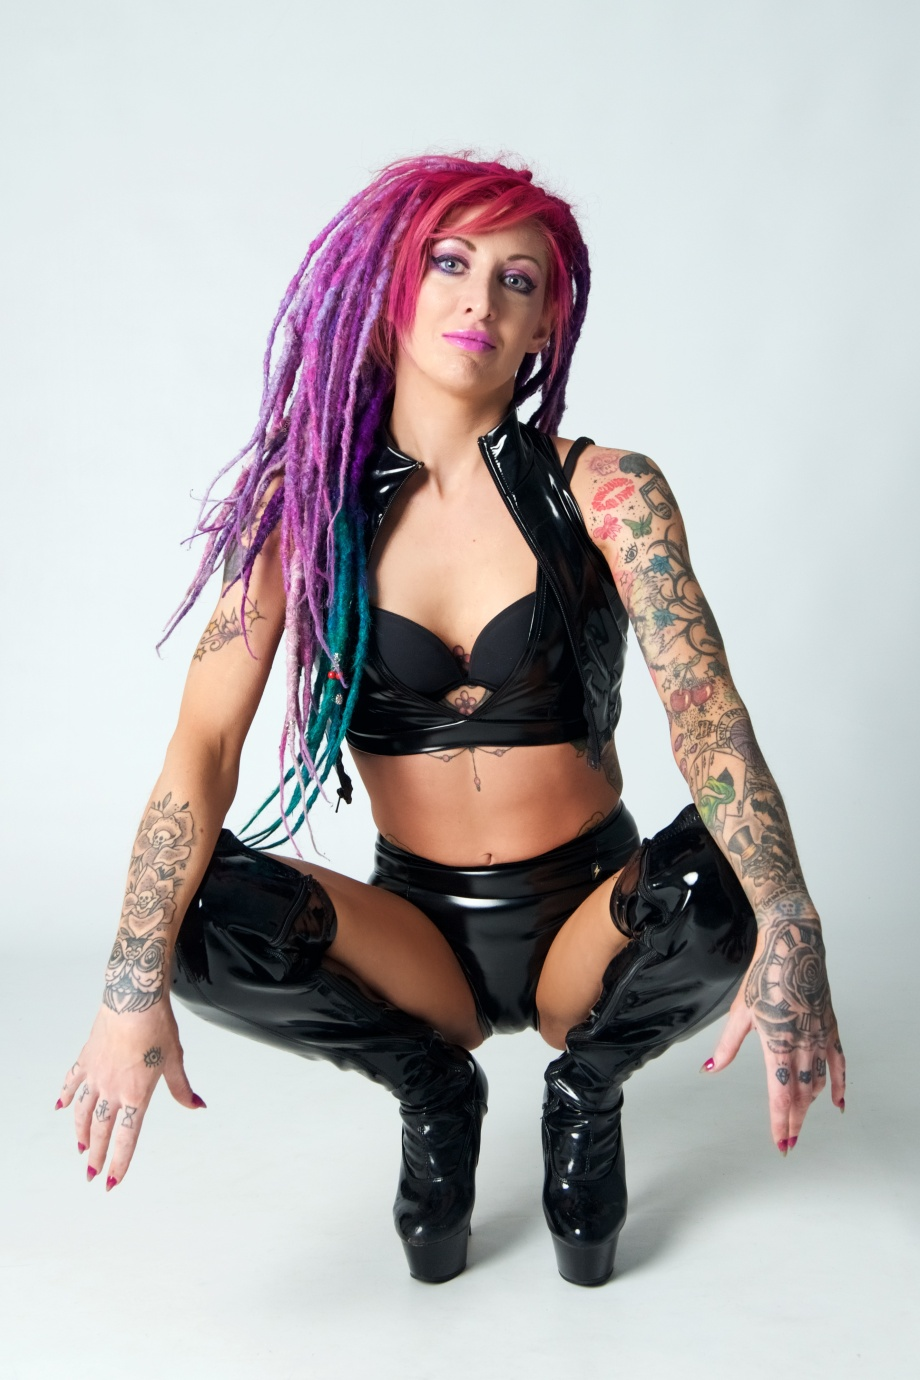 glamour, studio, dreads, tattoos, sexy